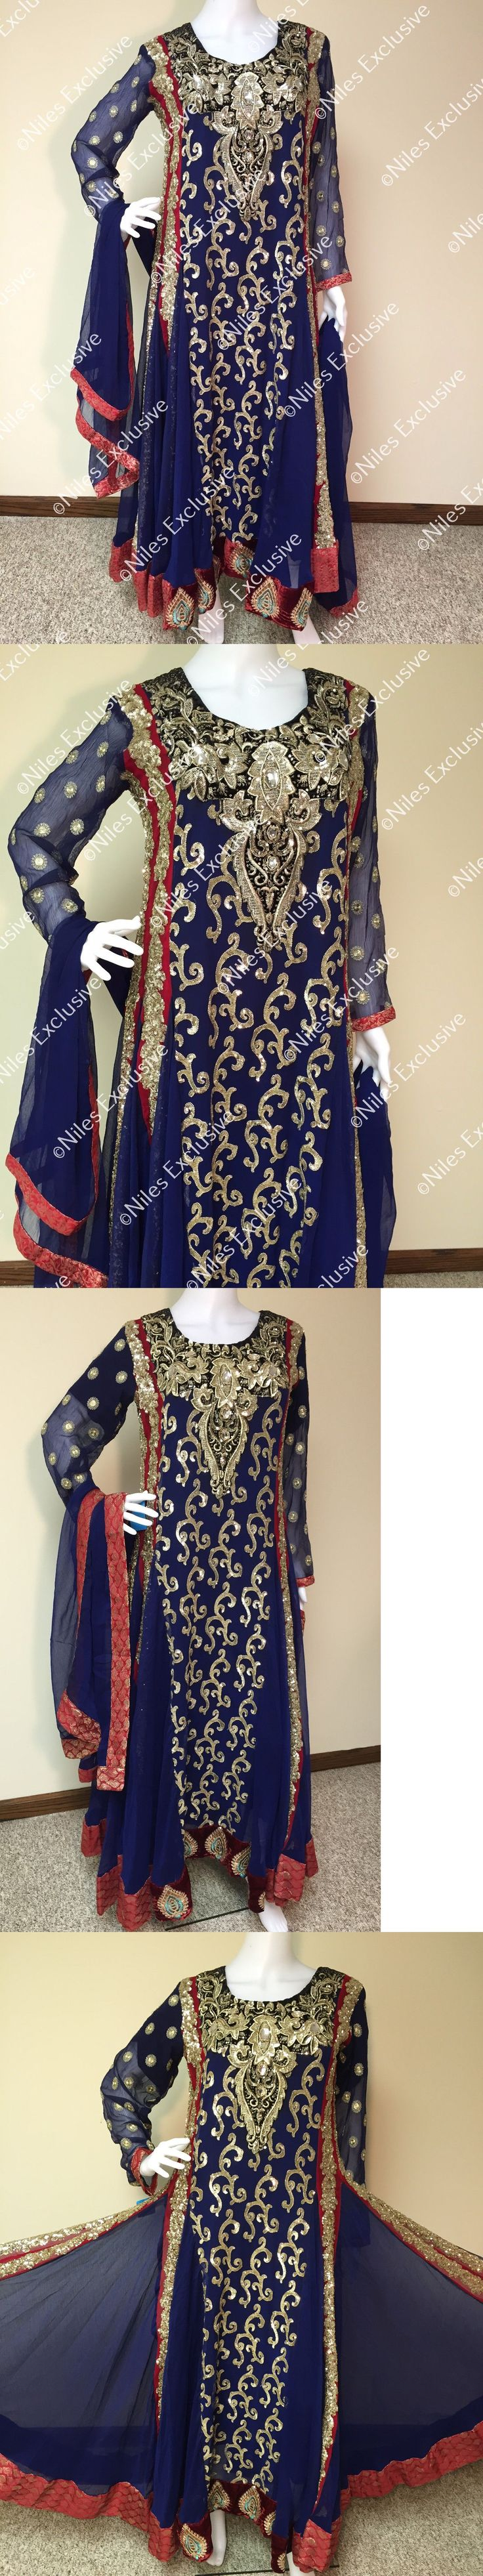 Salwar Kameez 155249: Indian Pakistani Salwar Kameez Anarkali Suit Designer Party Wear S,M, Xl -> BUY IT NOW ONLY: $148.49 on eBay!